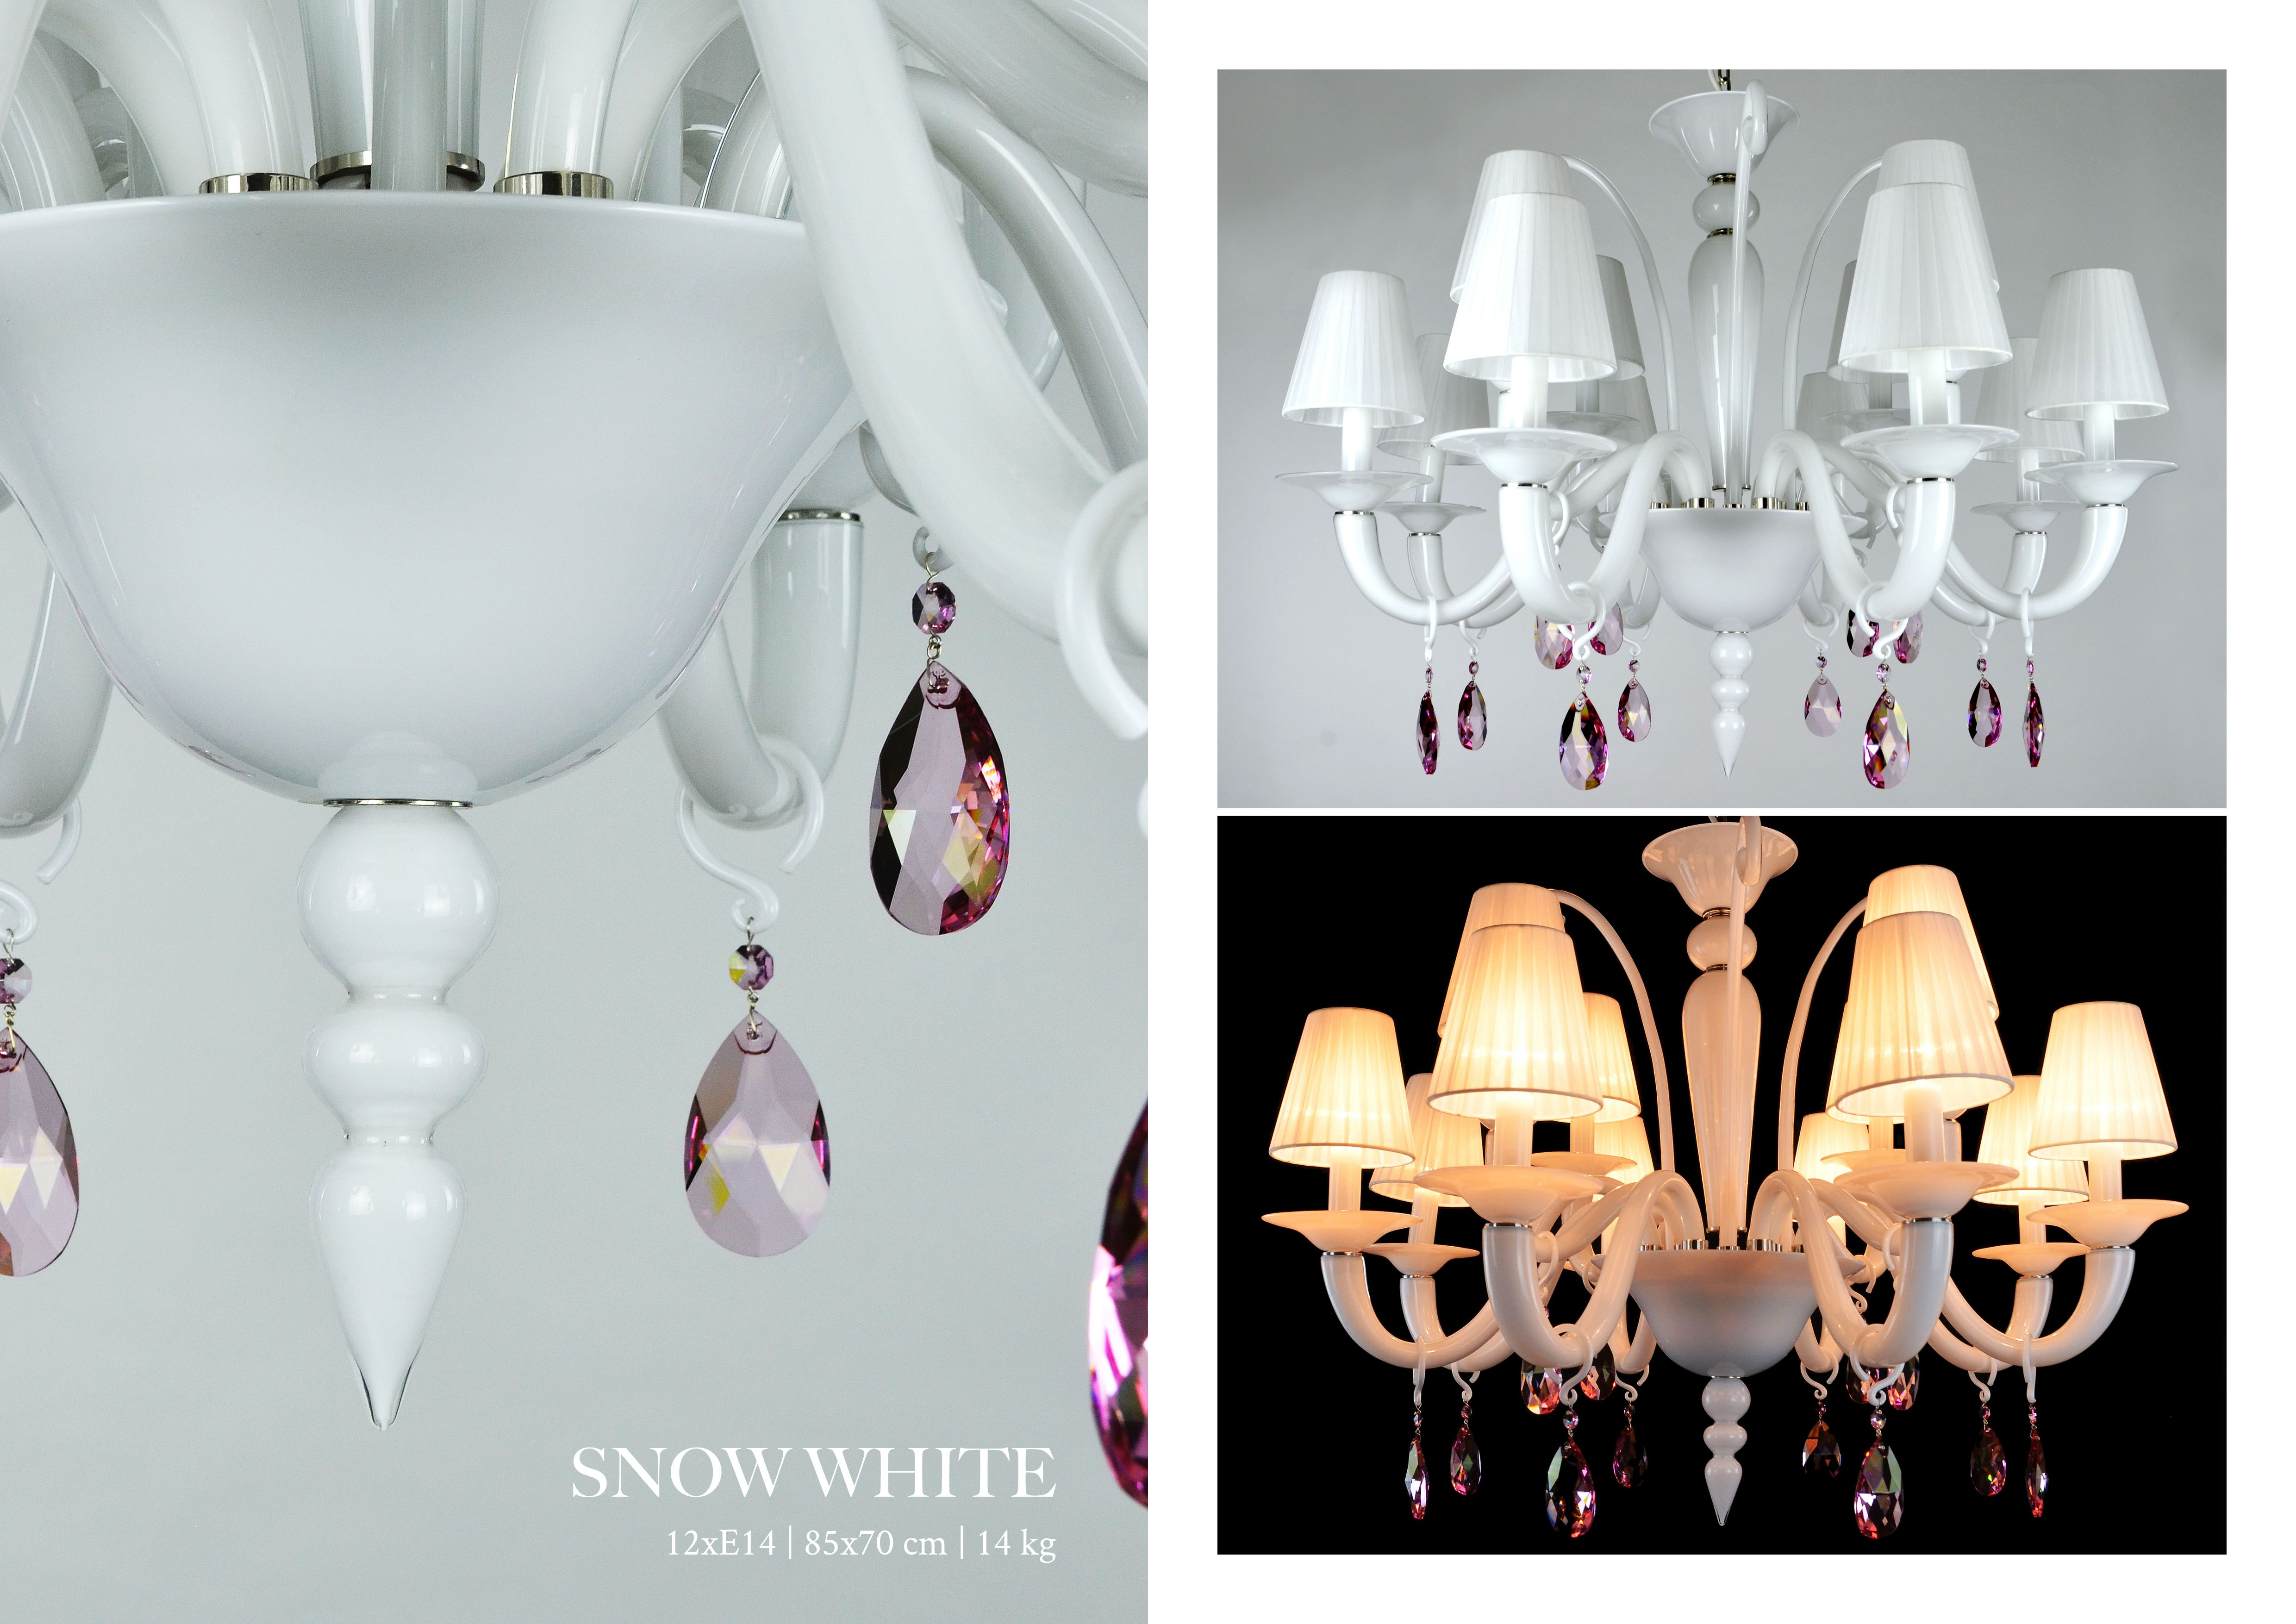 Introducing The Snow White Collection From Our Upcoming Catalogue